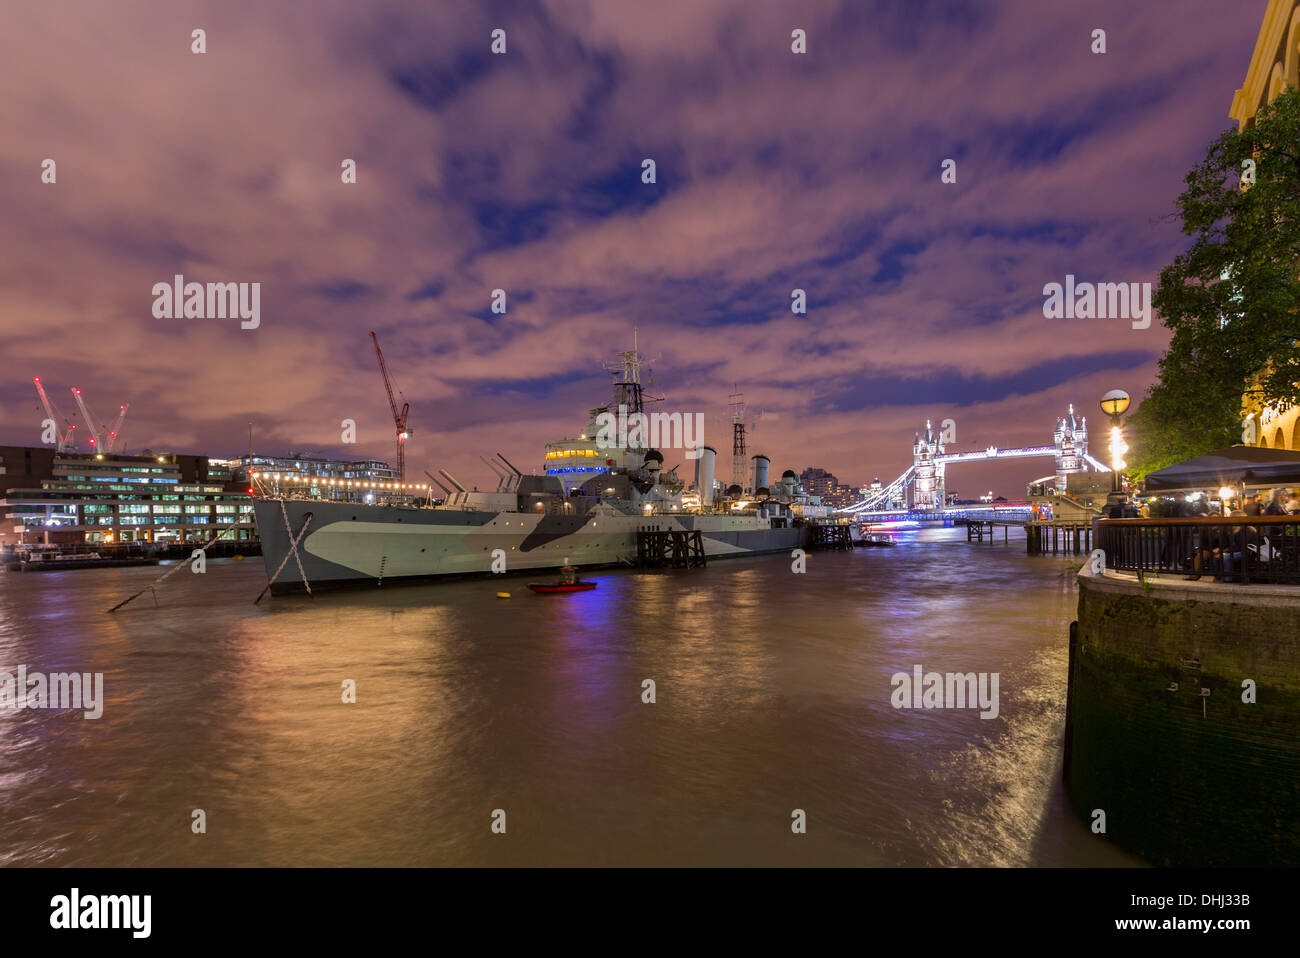 Night shot of the River Thames, HMS Belfast, Tower Bridge in early dusk - Stock Image